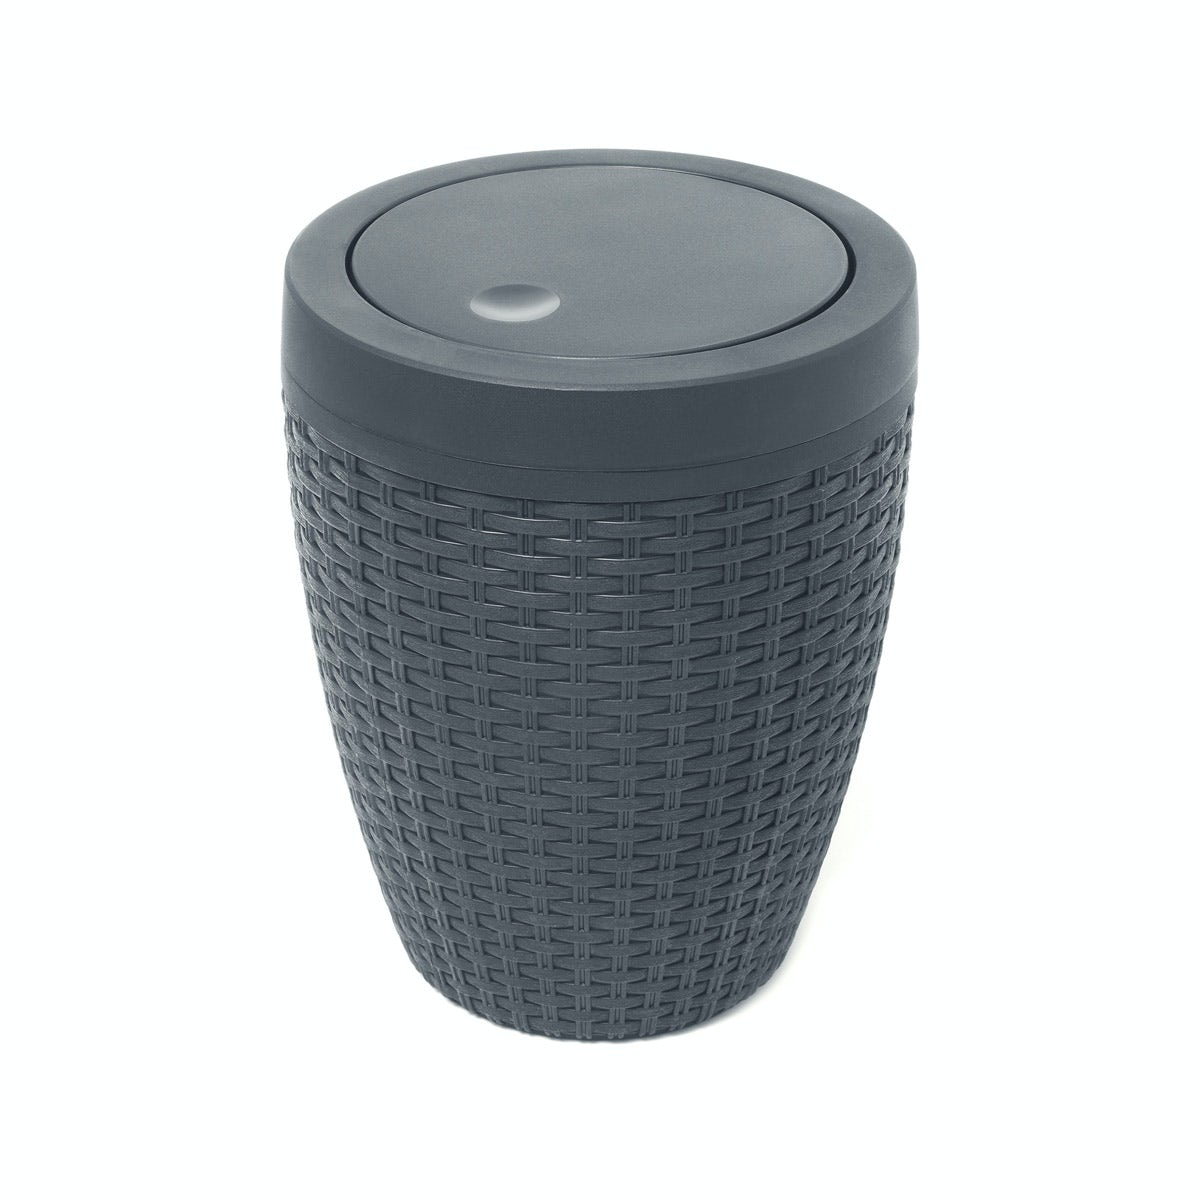 Addis Grey Faux Rattan Round Bathroom Bin